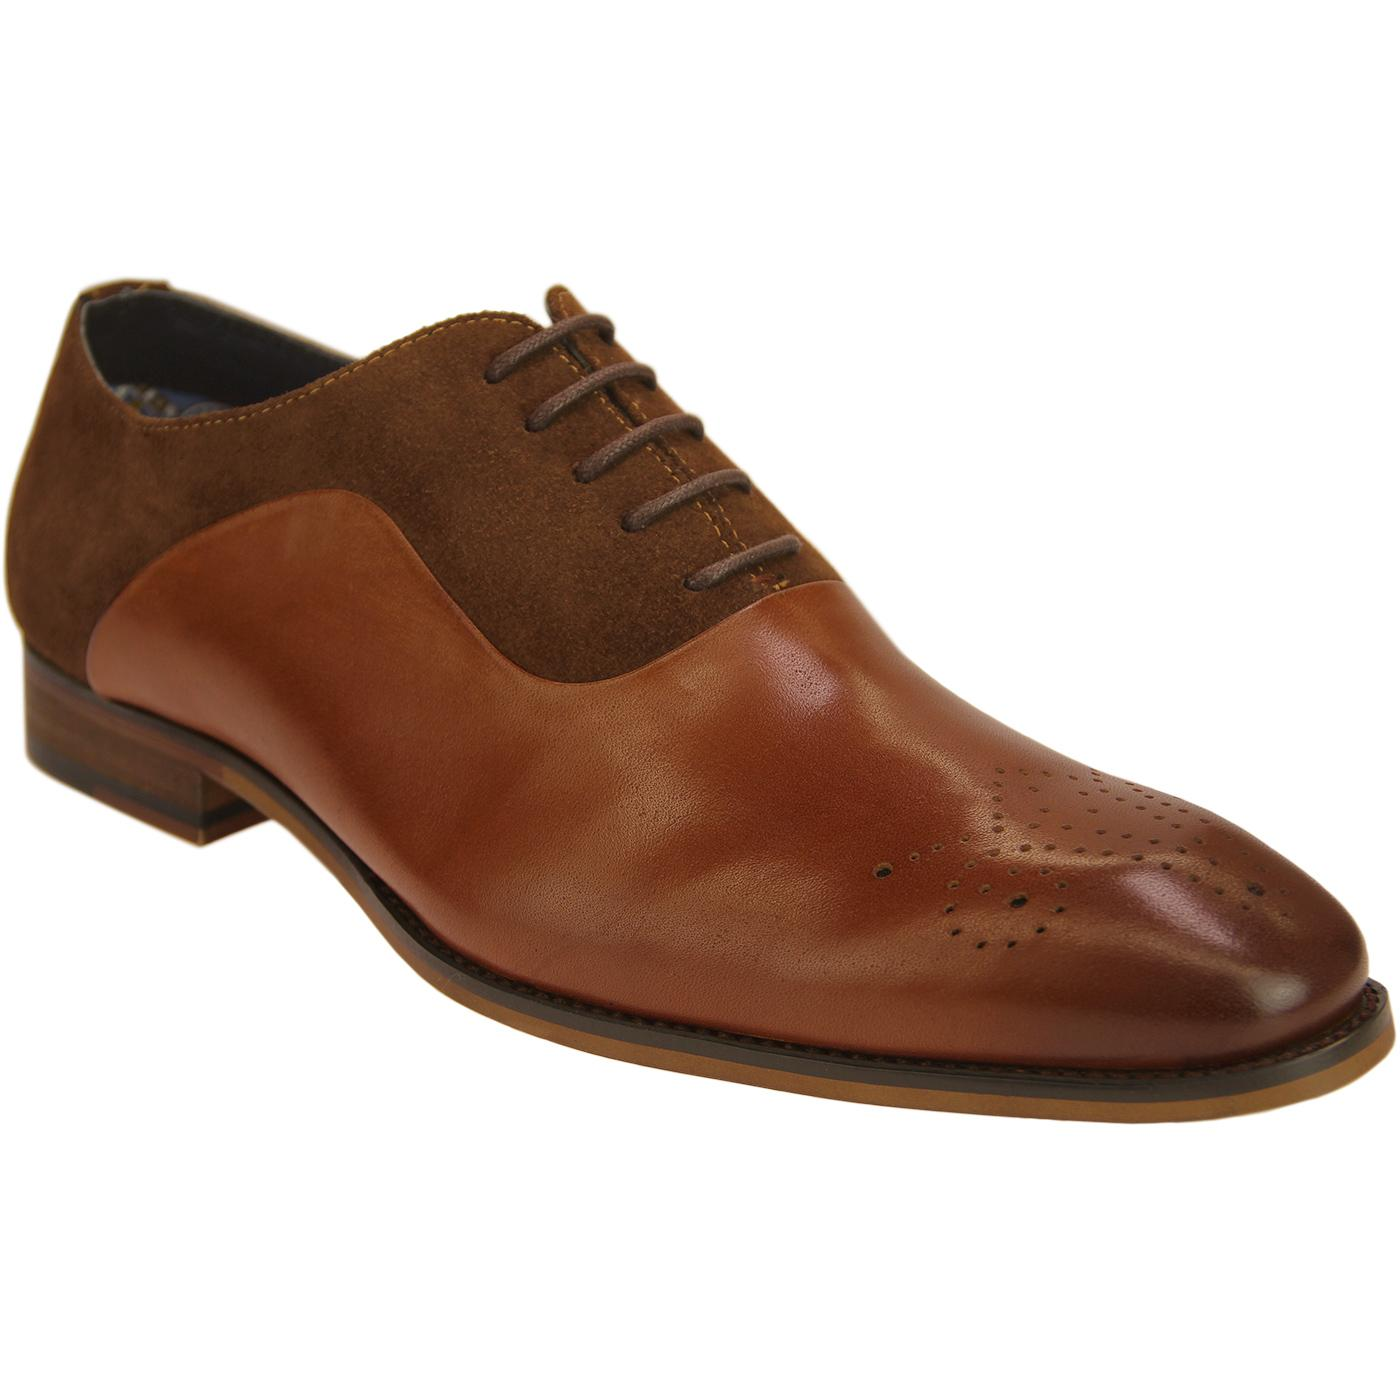 David PAOLO VANDINI Suede & Leather Oxford Shoes T